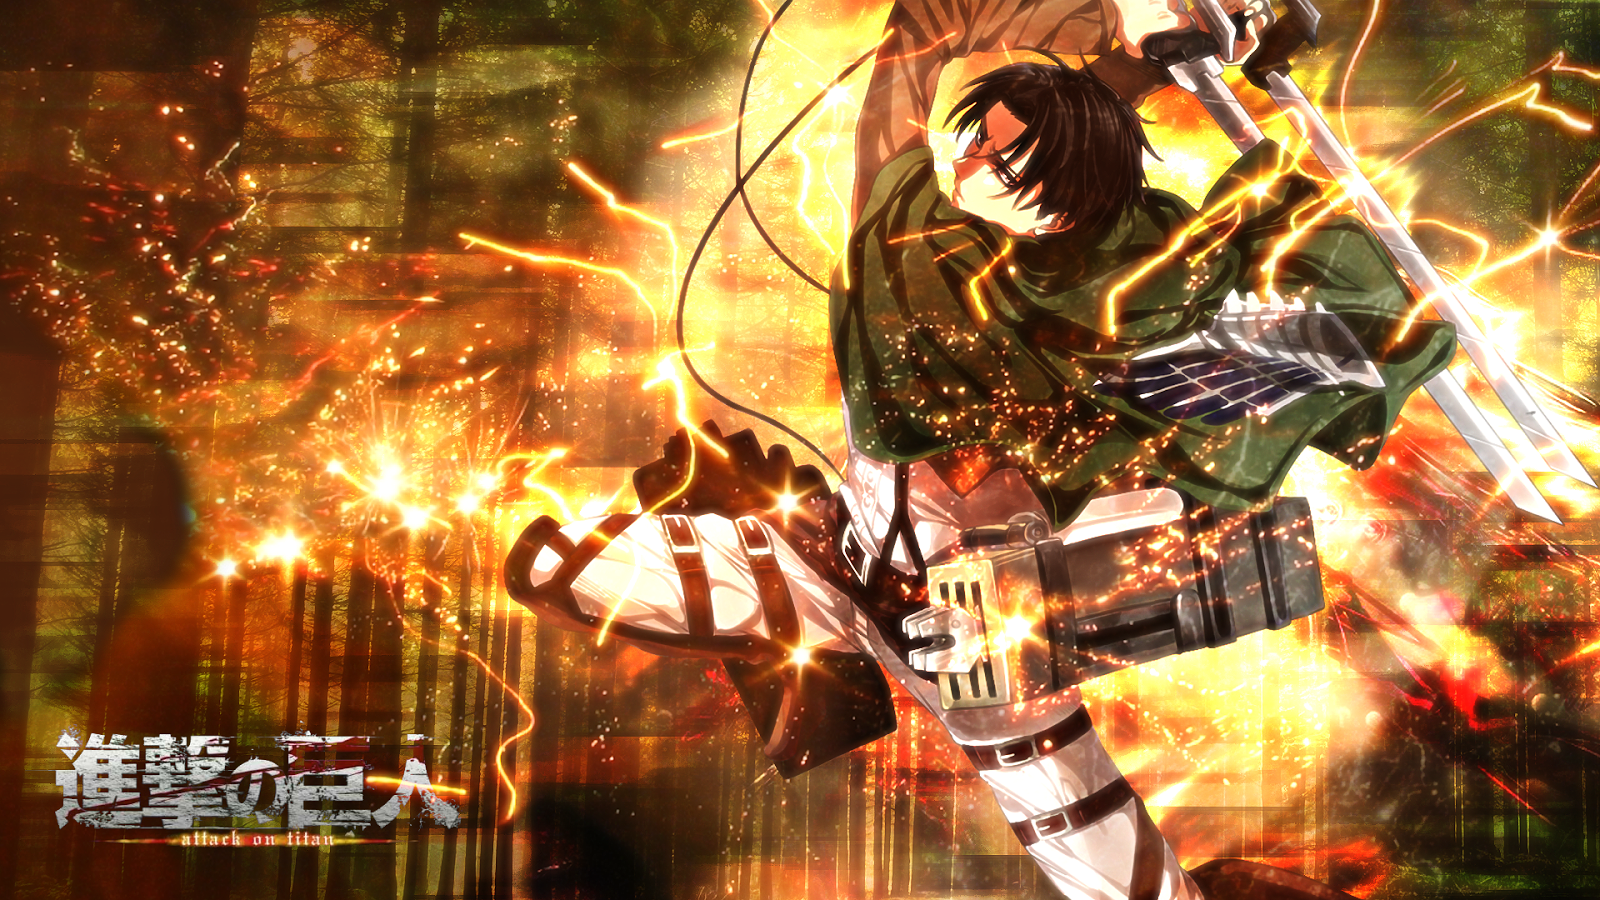 Attack on Titan 1920 x 1080 Wallpapers Latest HD Wallpapers 1600x900